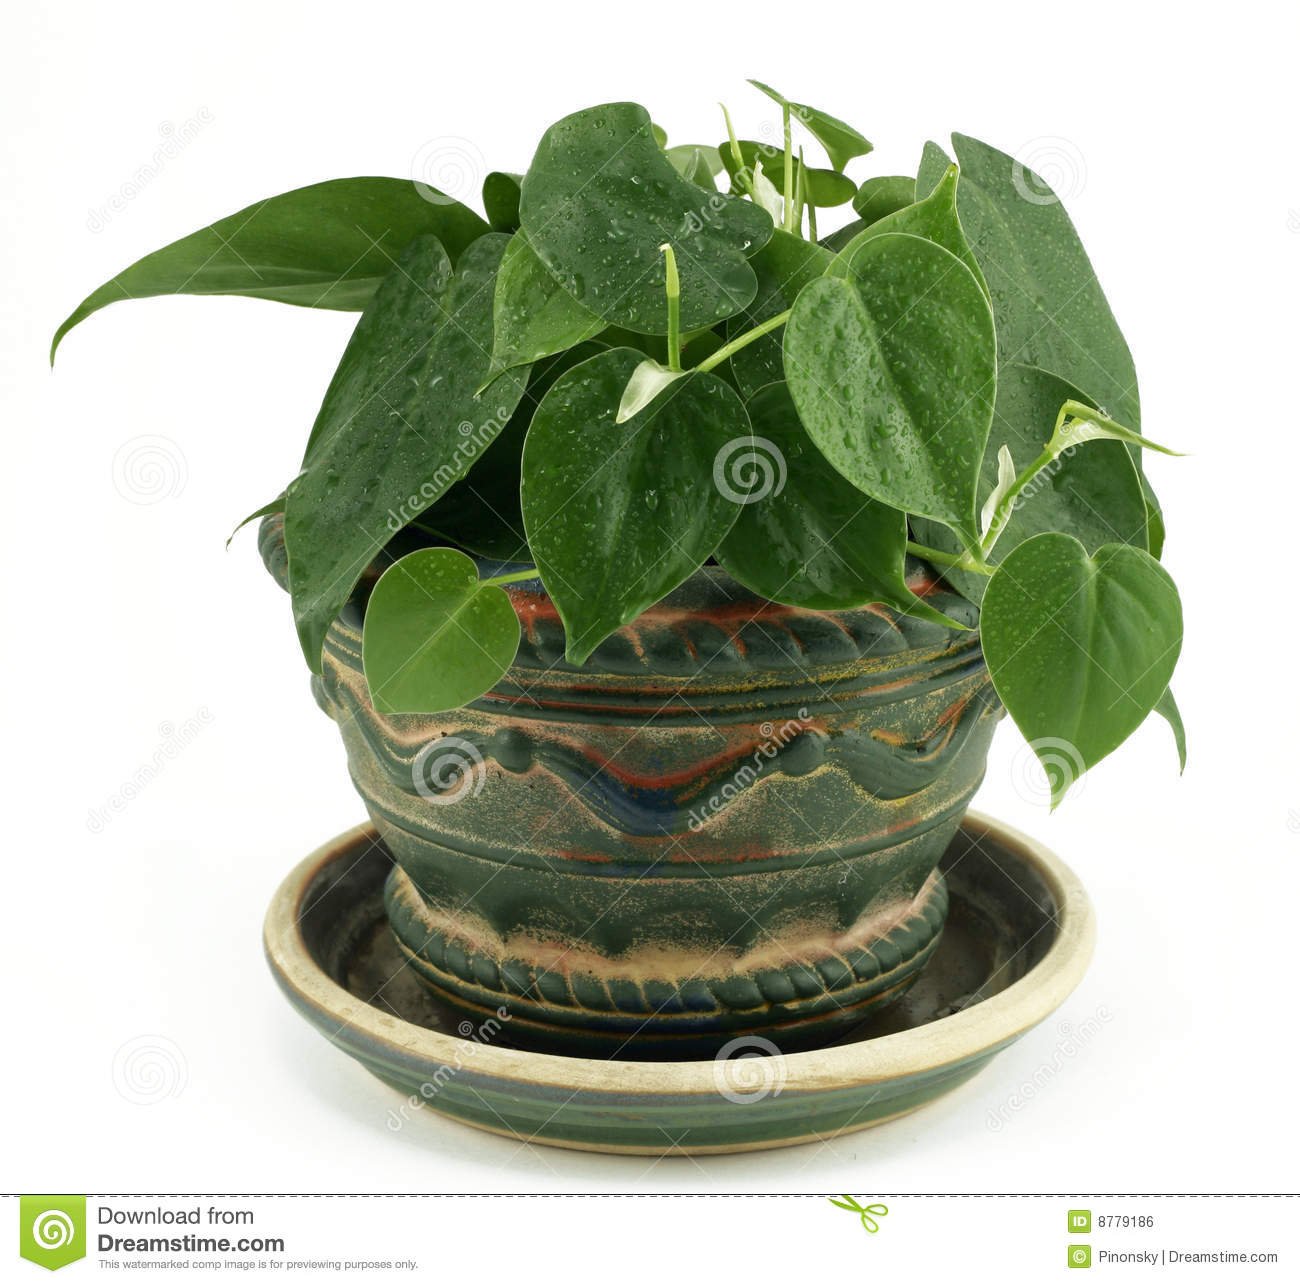 Houseplant Potted do Philodendron no branco